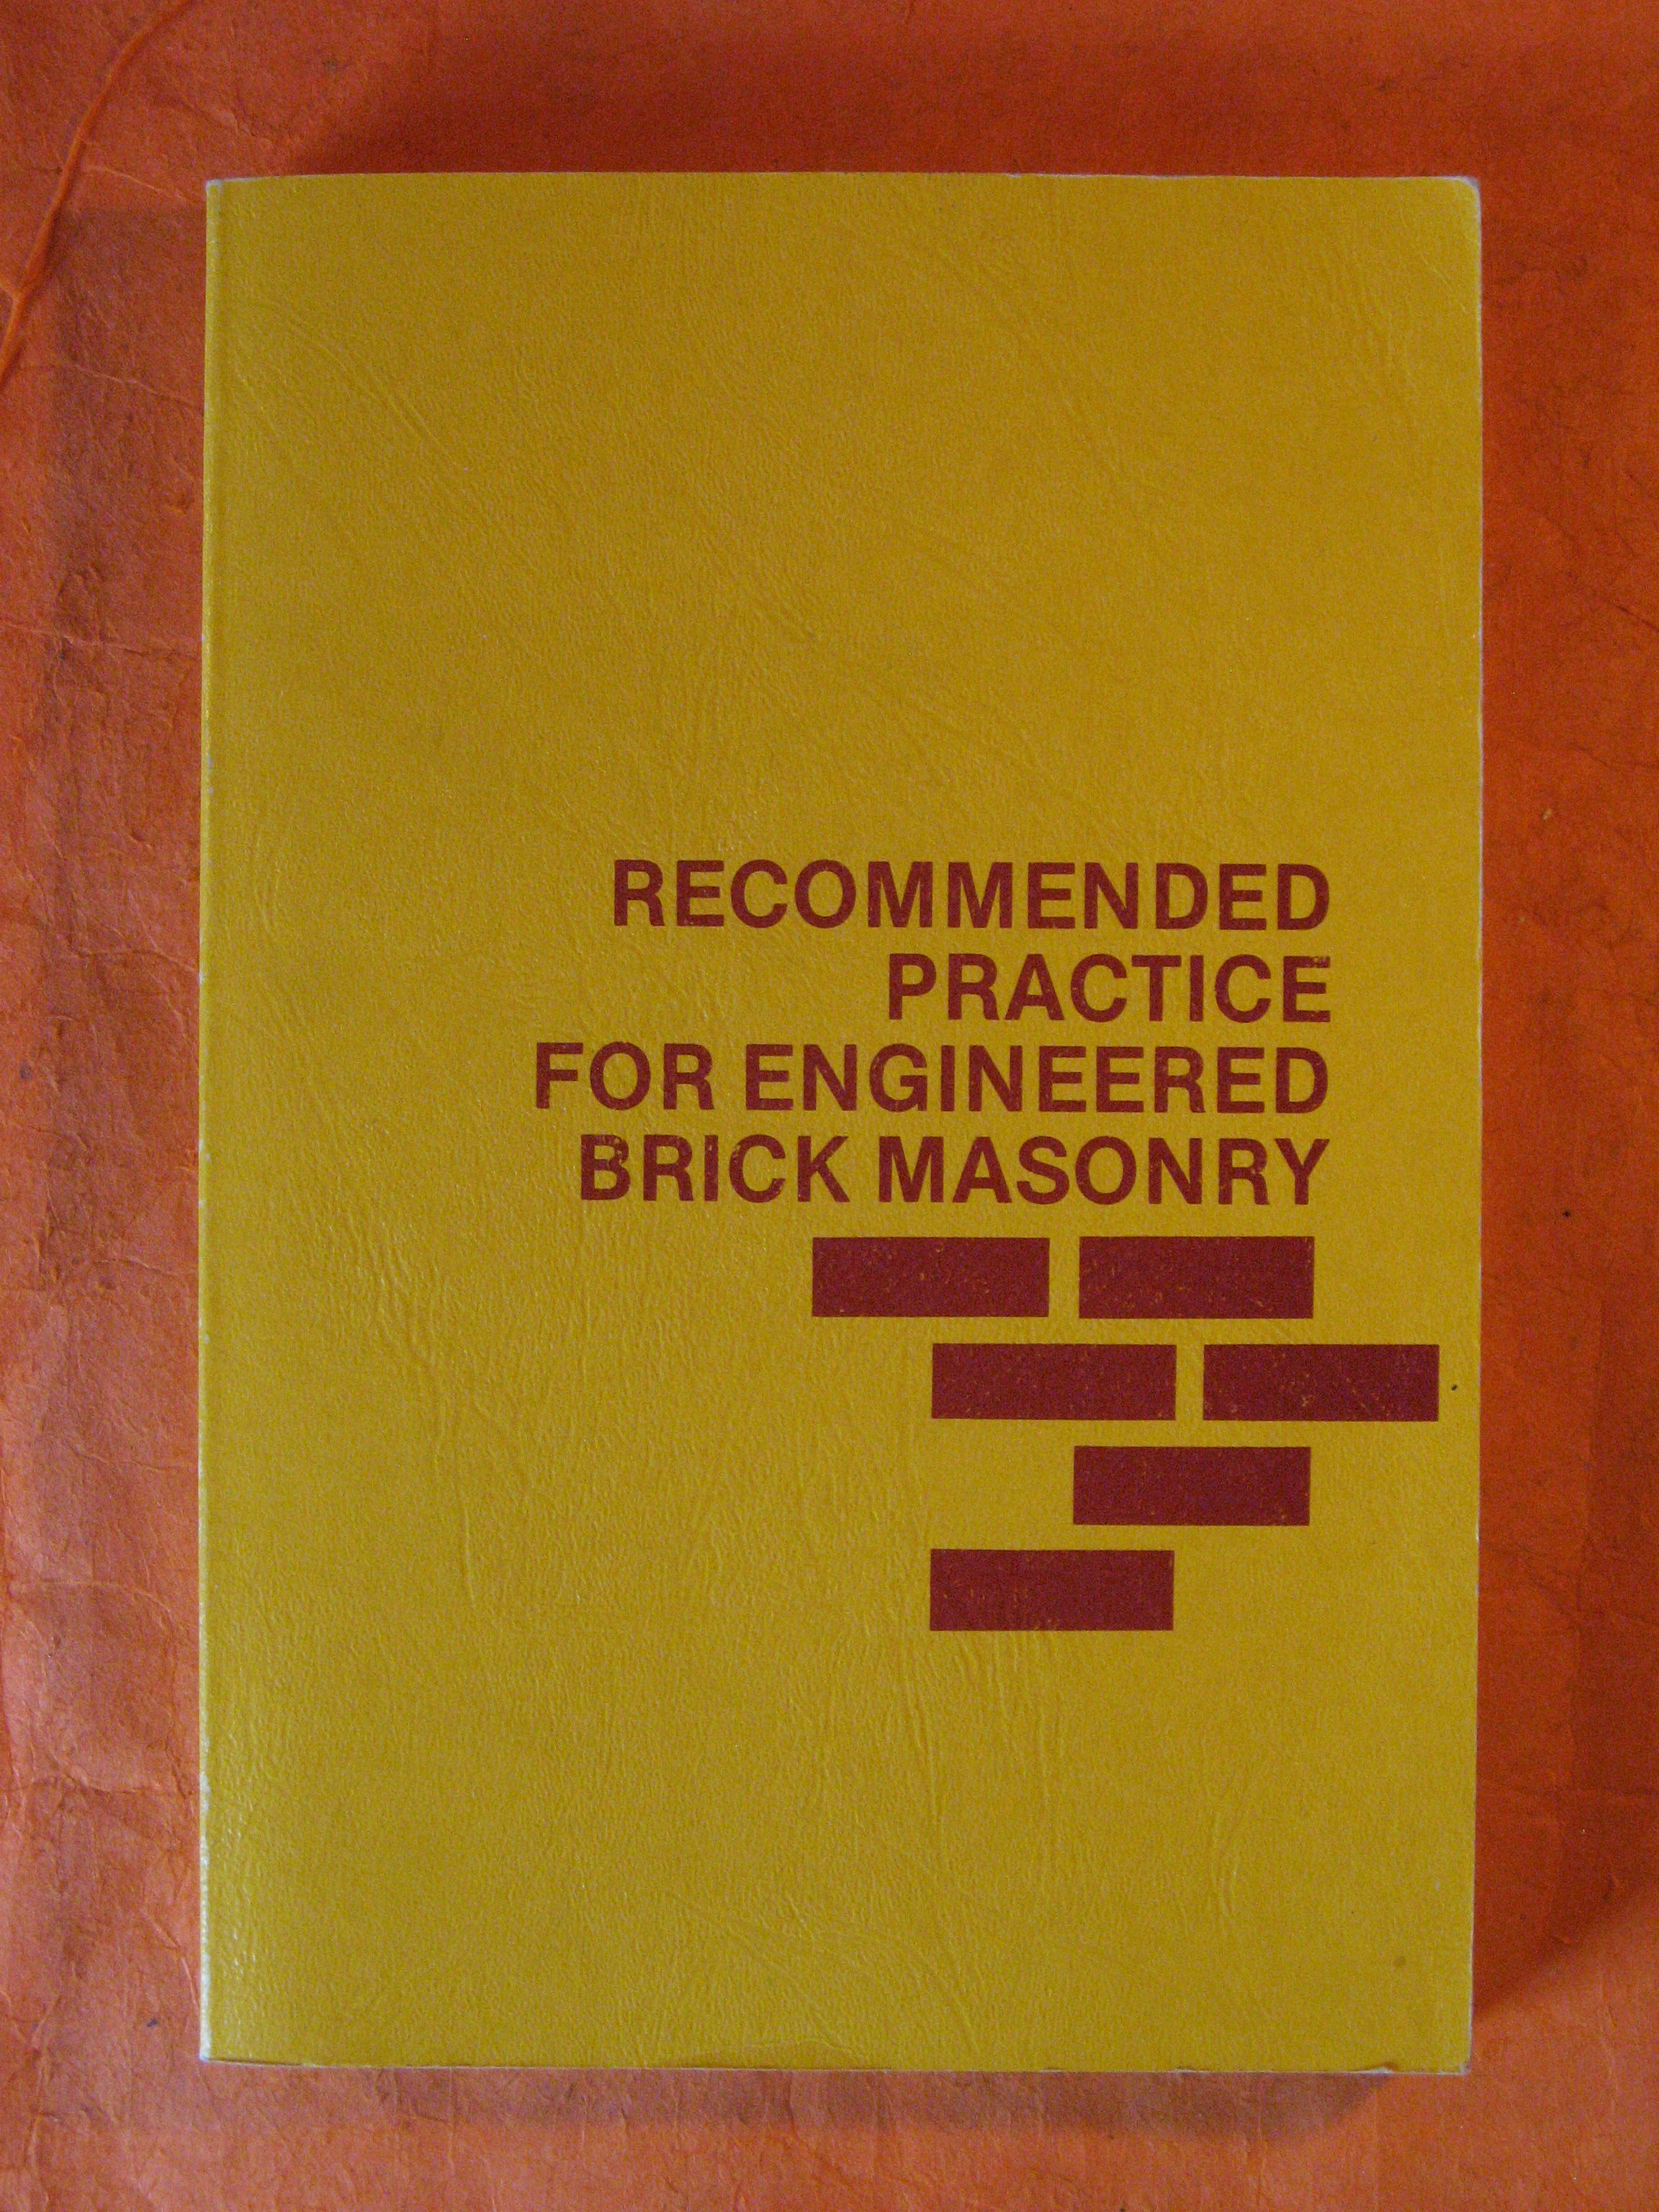 Recommended Practice for Engineered Brick Masonry